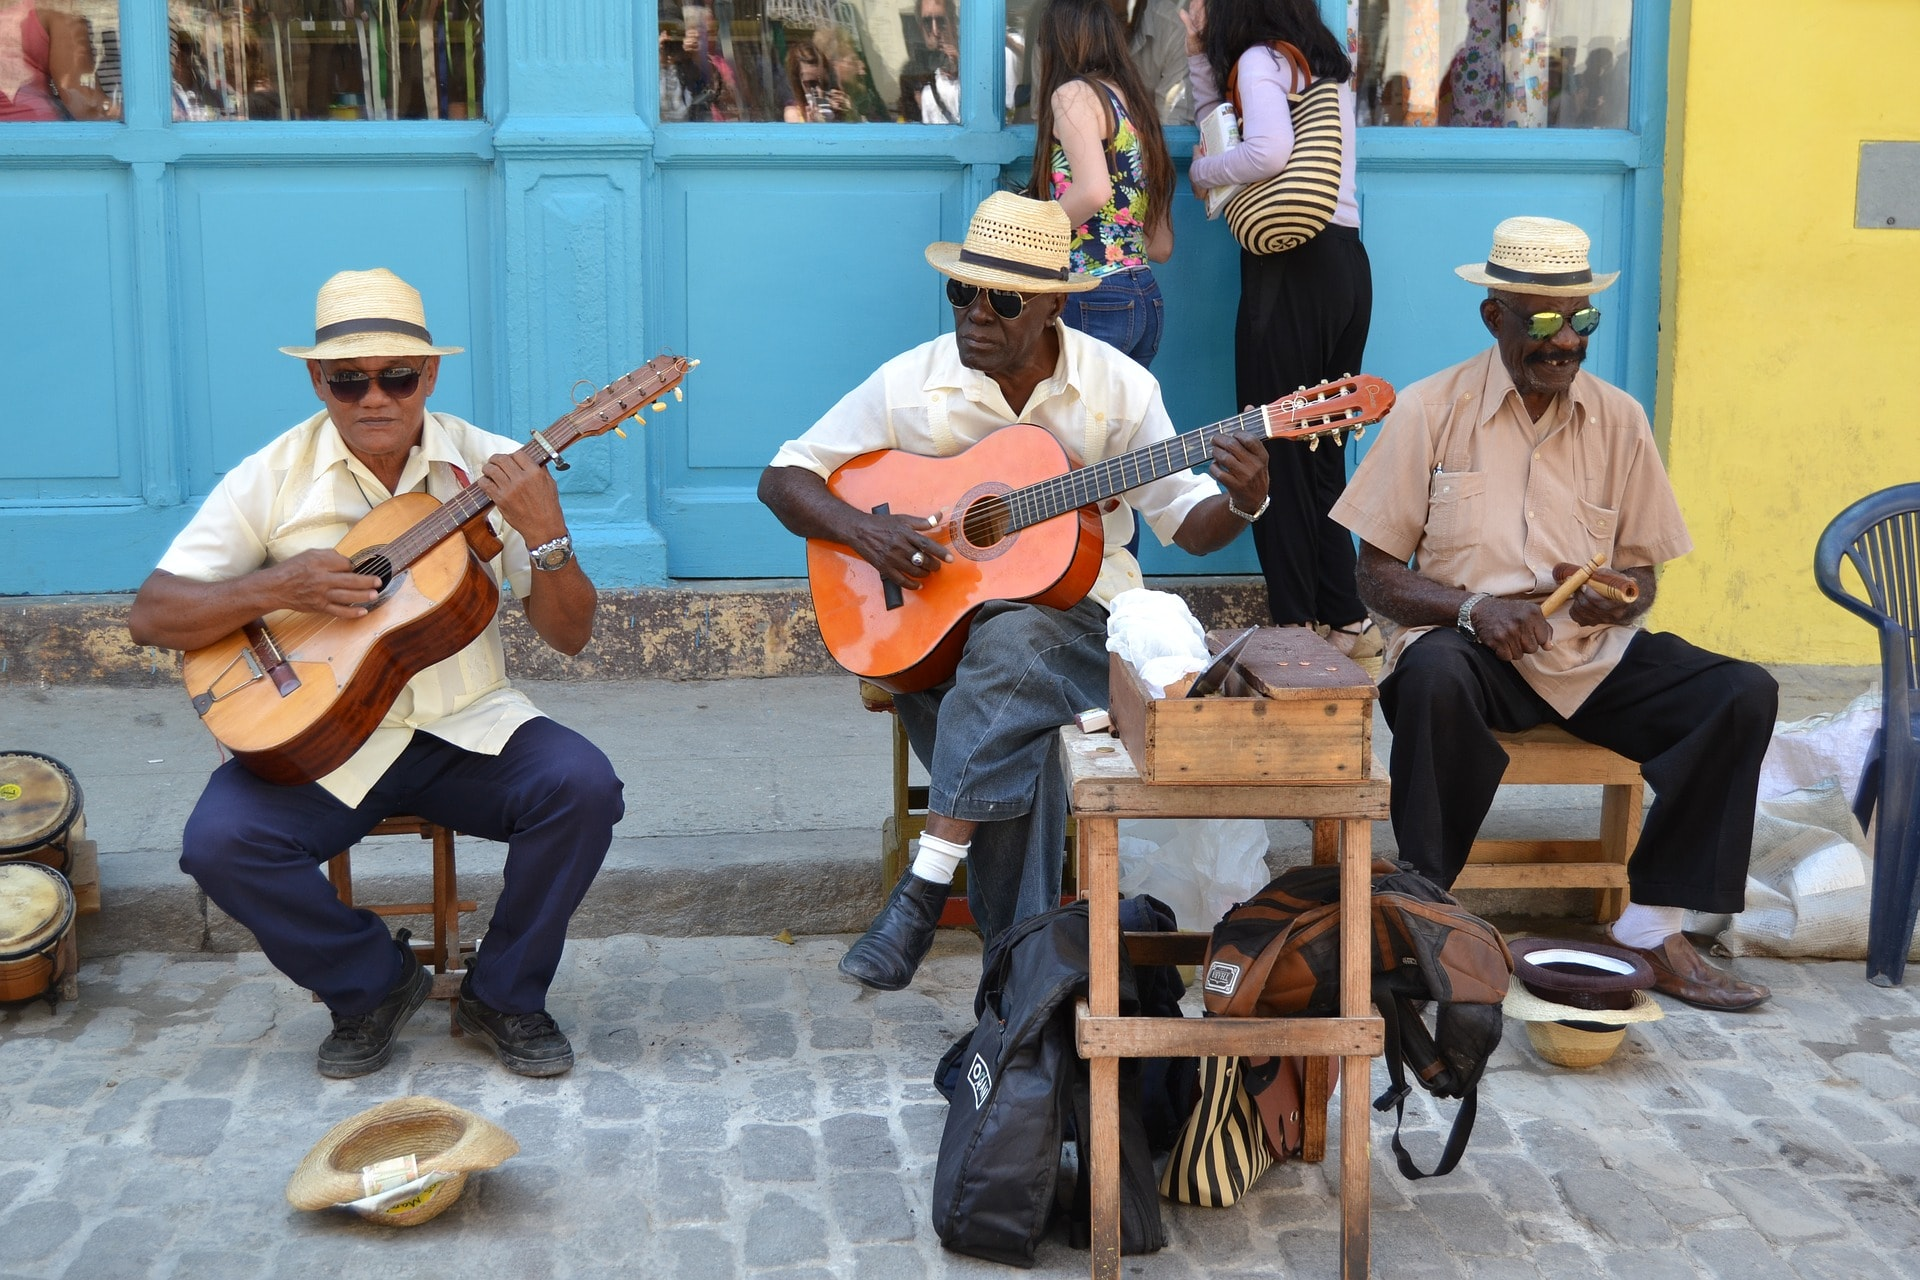 locals in cuba playing guitar